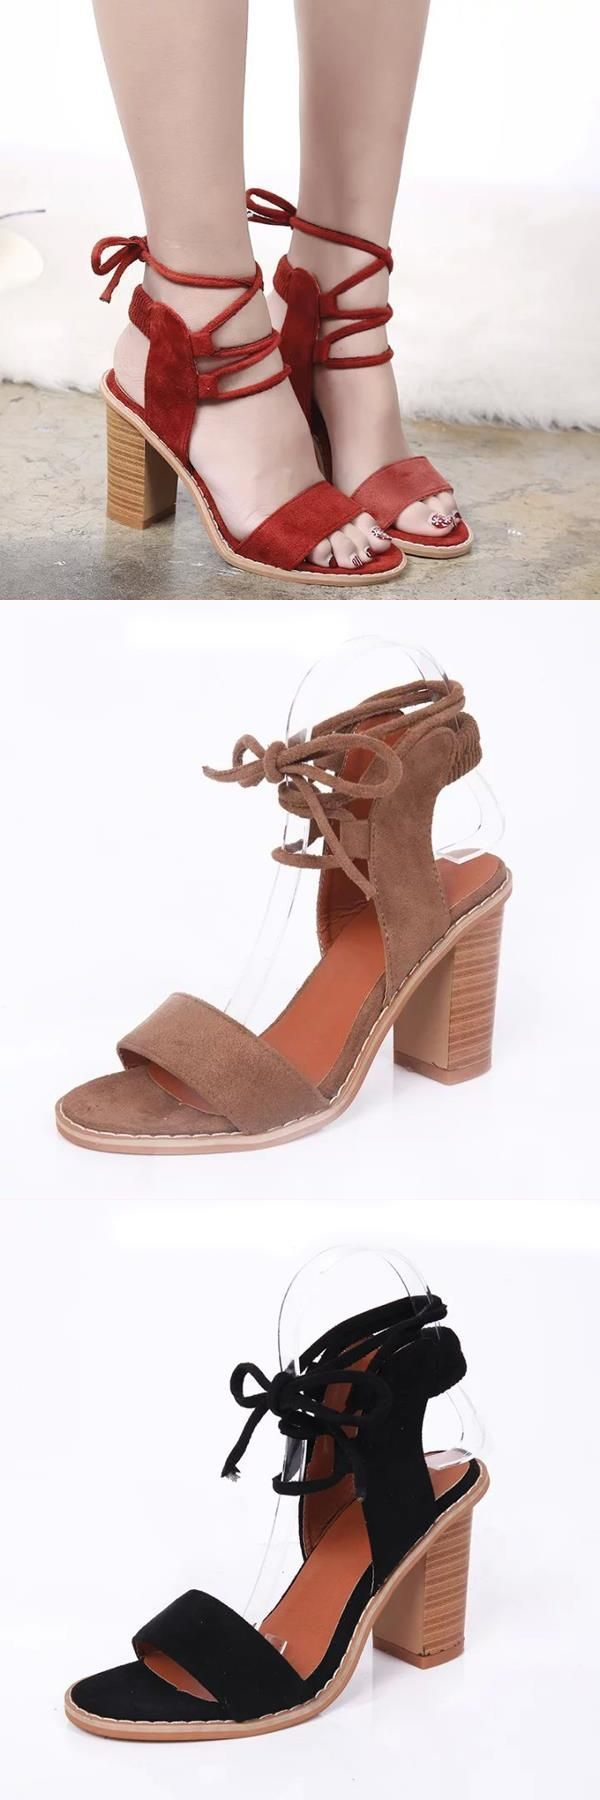 2e6a32c8f33c Women chunky heel lace up sandals suede strappy peep toe sandals pilyq  sandals  mamp s  sandals  ladies  sandals  aruba  sandals  in  st  lucia  v   shaped   ...